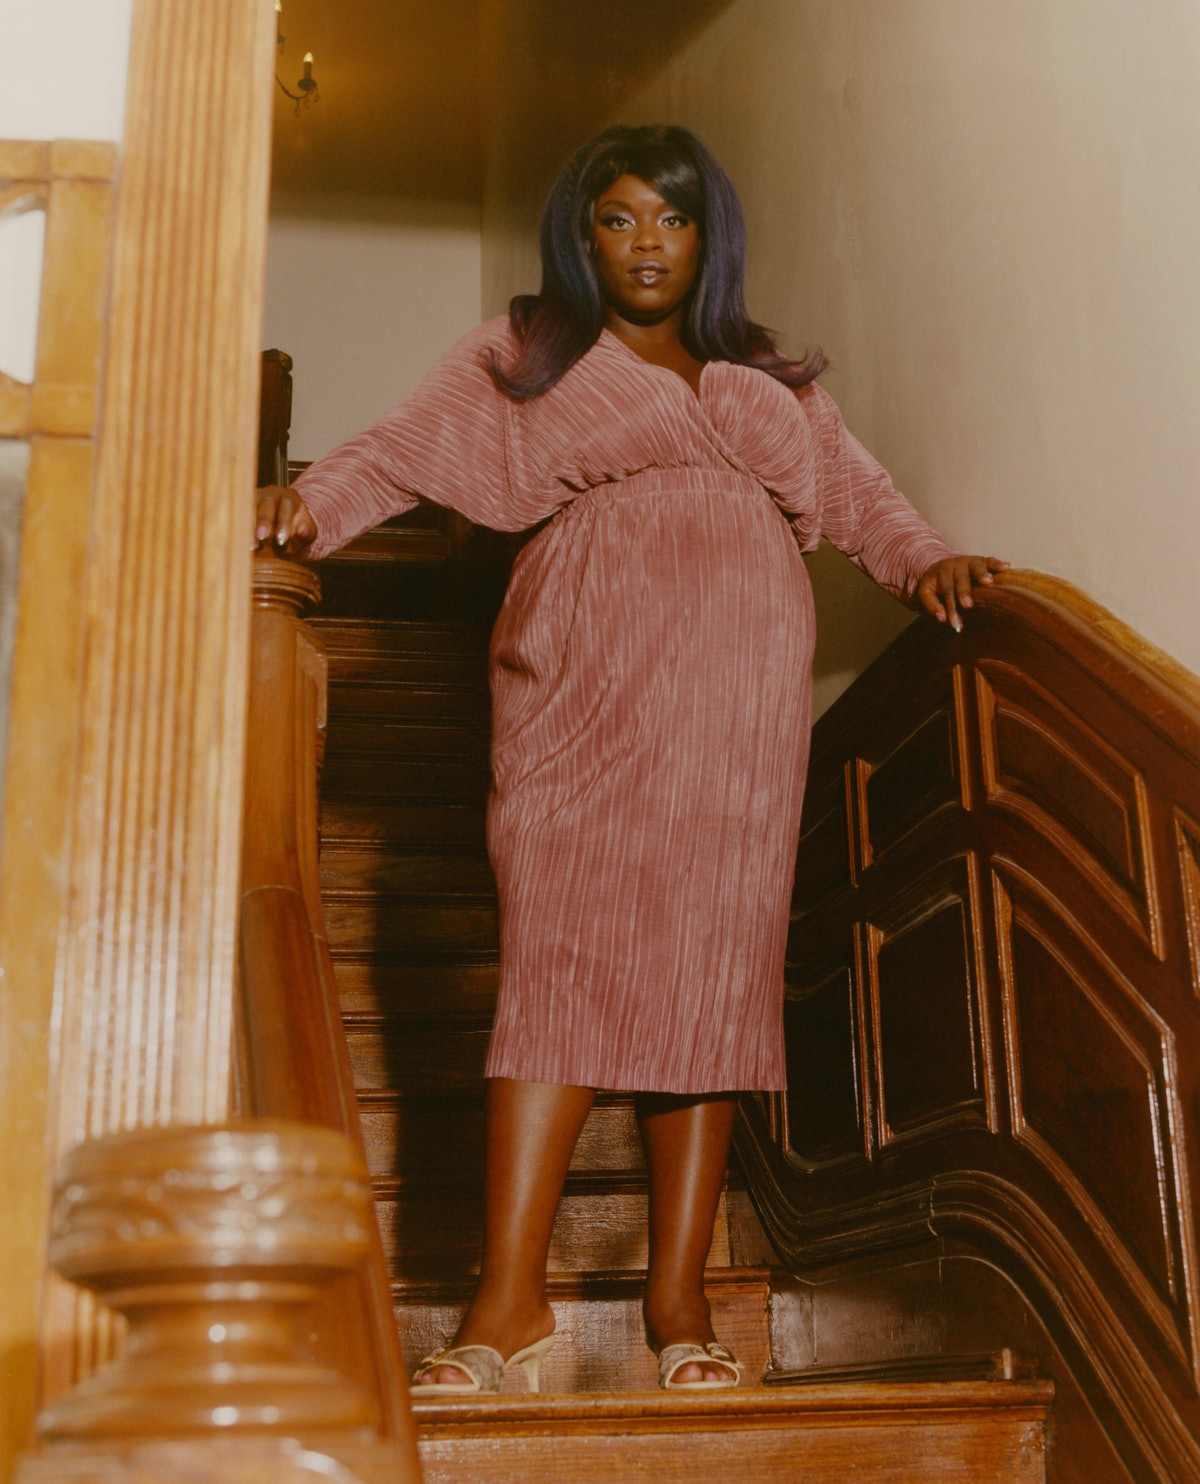 yola stands on a staircase in a pink pleated dress